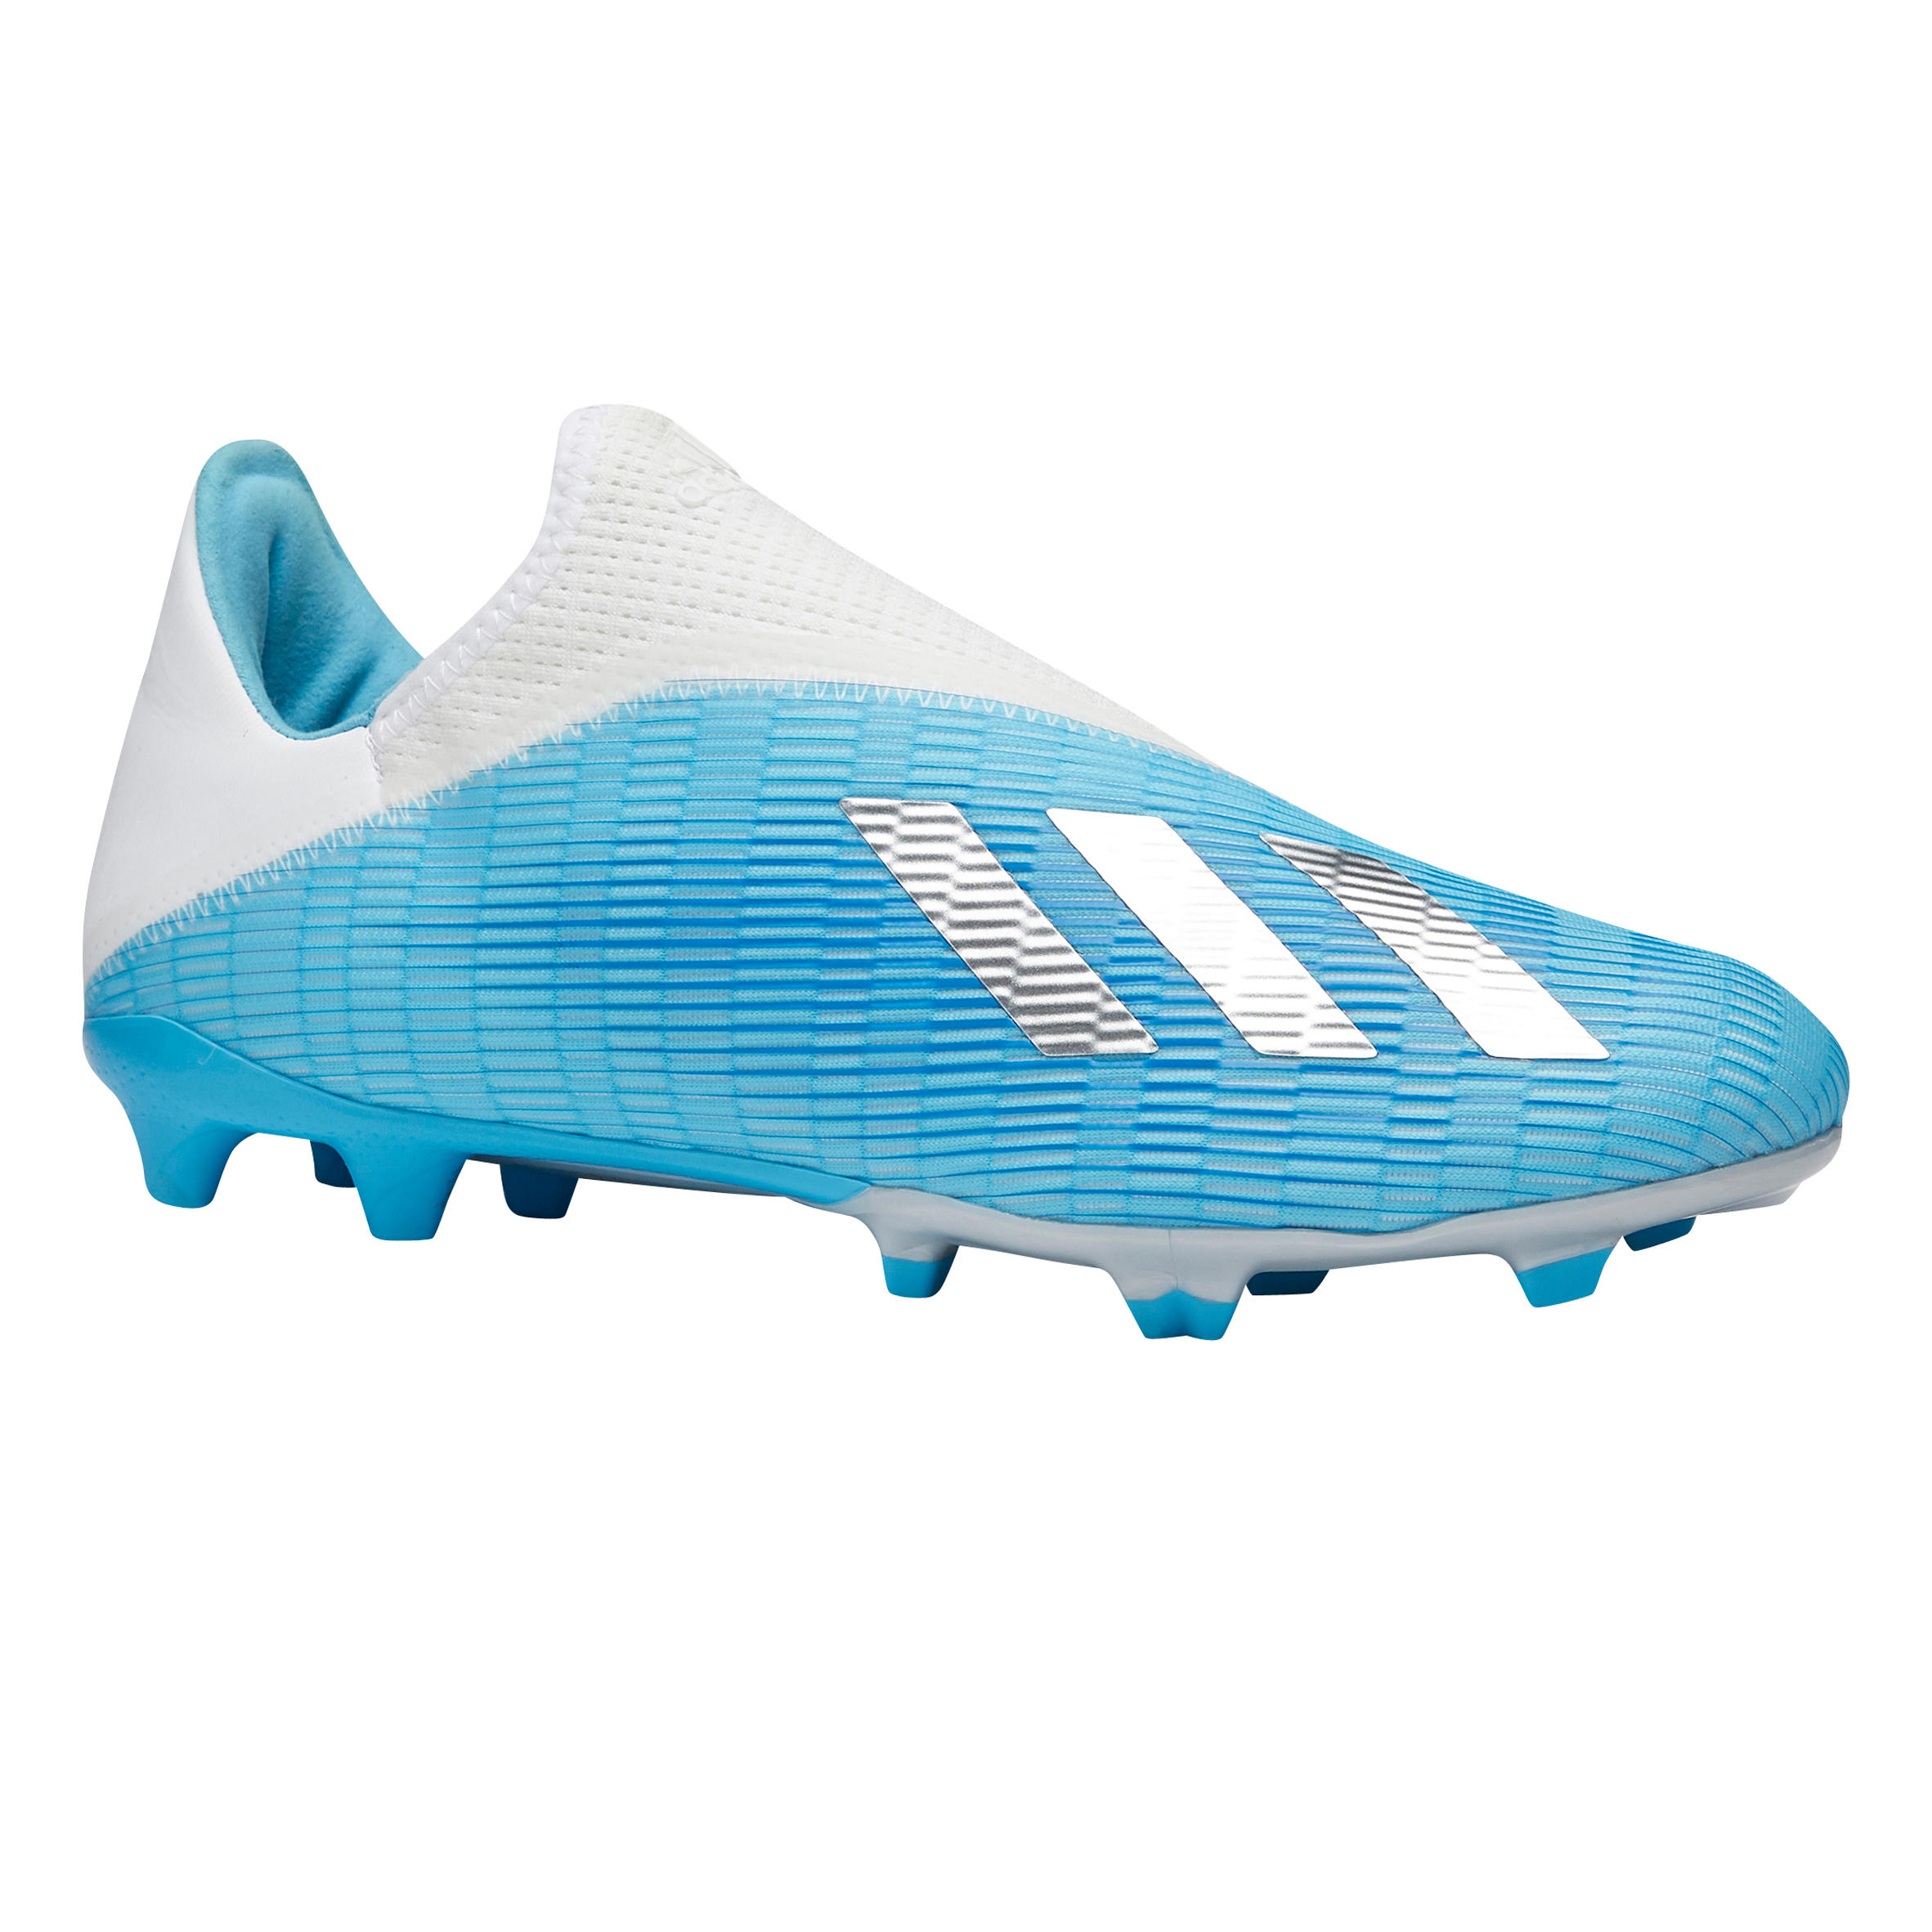 ADIDAS X.3 Laceless FG Kids' Football Boots - Blue